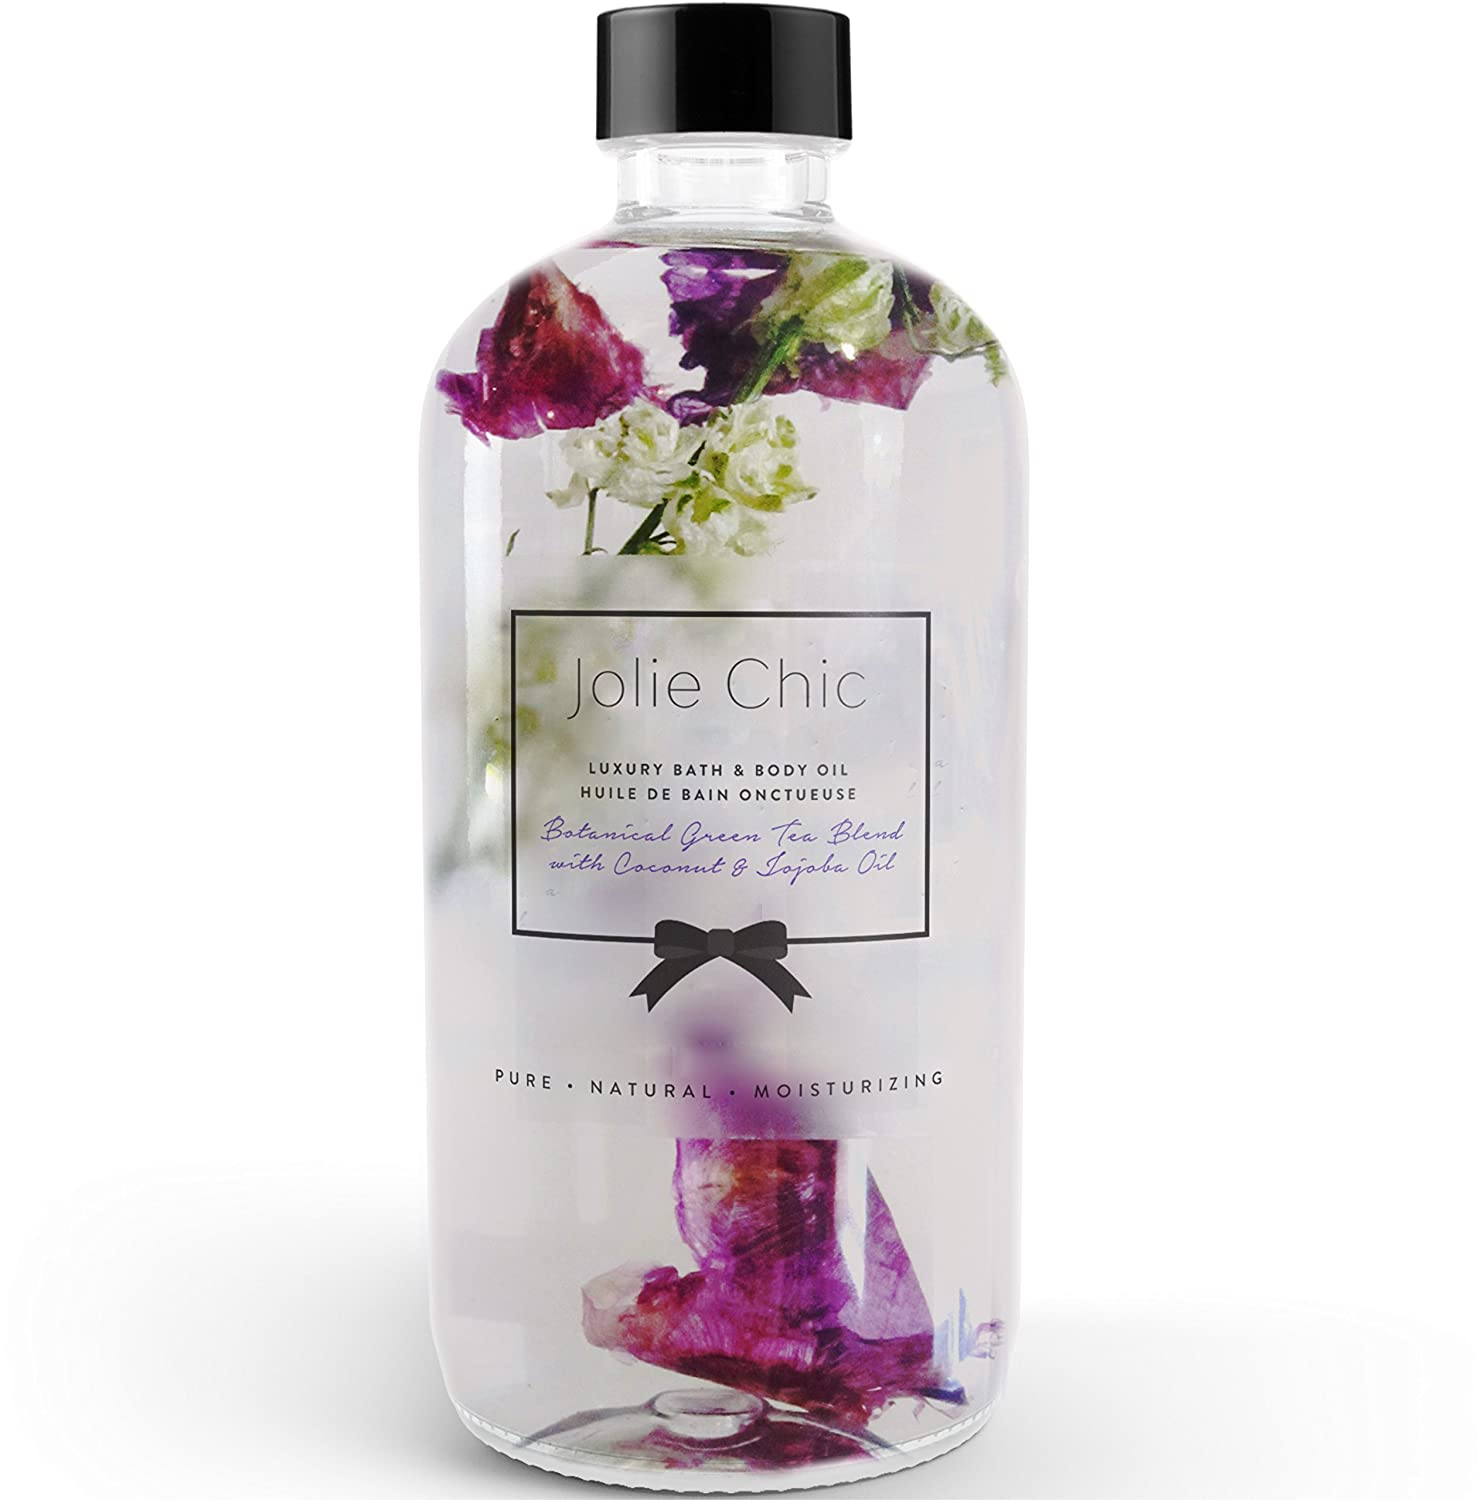 Bath and Body Oil for Women - Bath Oil with Jojoba and Coconut Oil - Massage Oil - UK Made pure sanctum